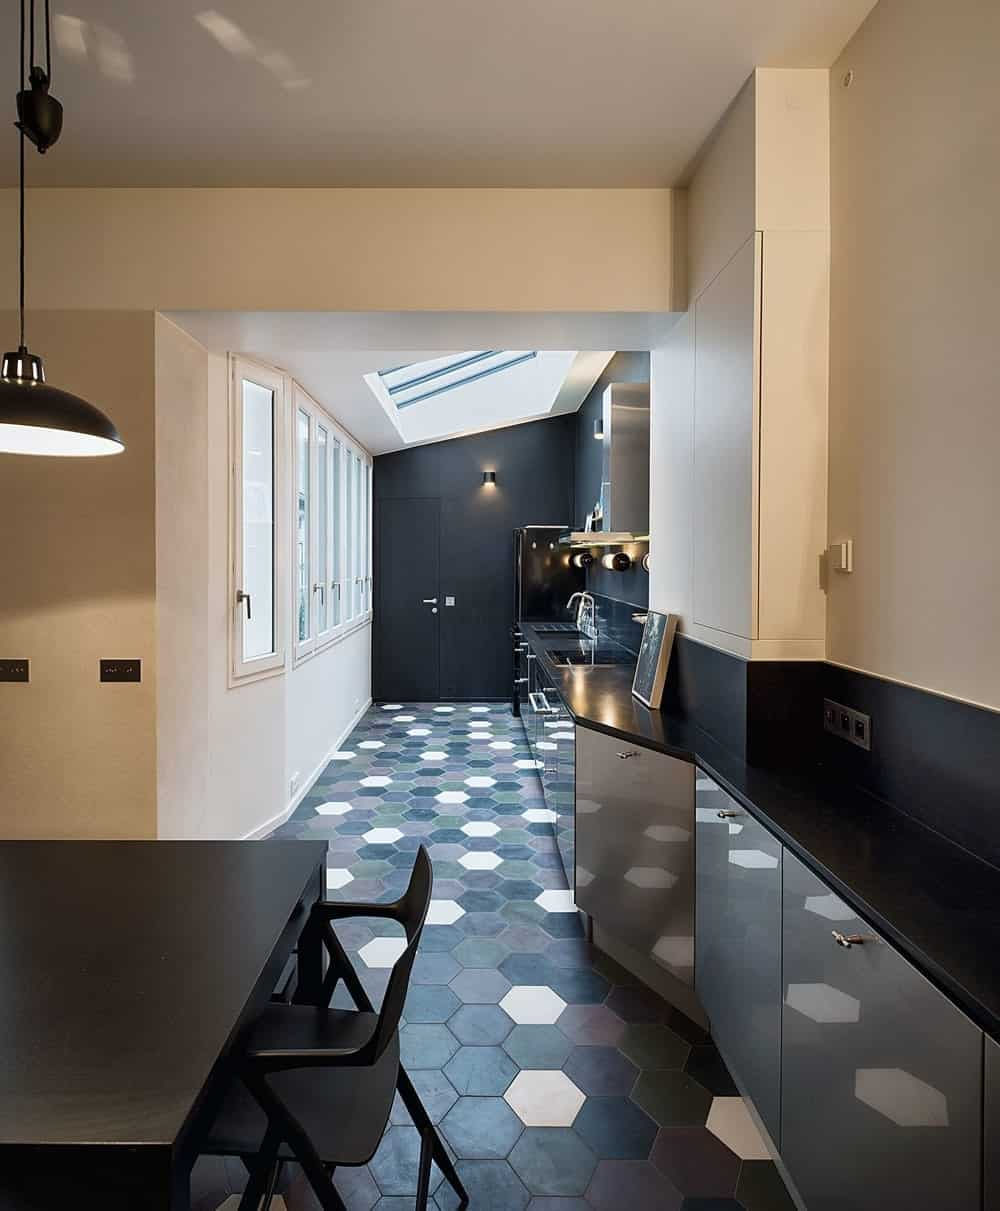 A long kitchen complemented with multi-shaded hex floor tiles. It includes stainless steel cabinetry cabinet with a dark stone counter and a vaulted roof with a lookout window acquiring regular light.